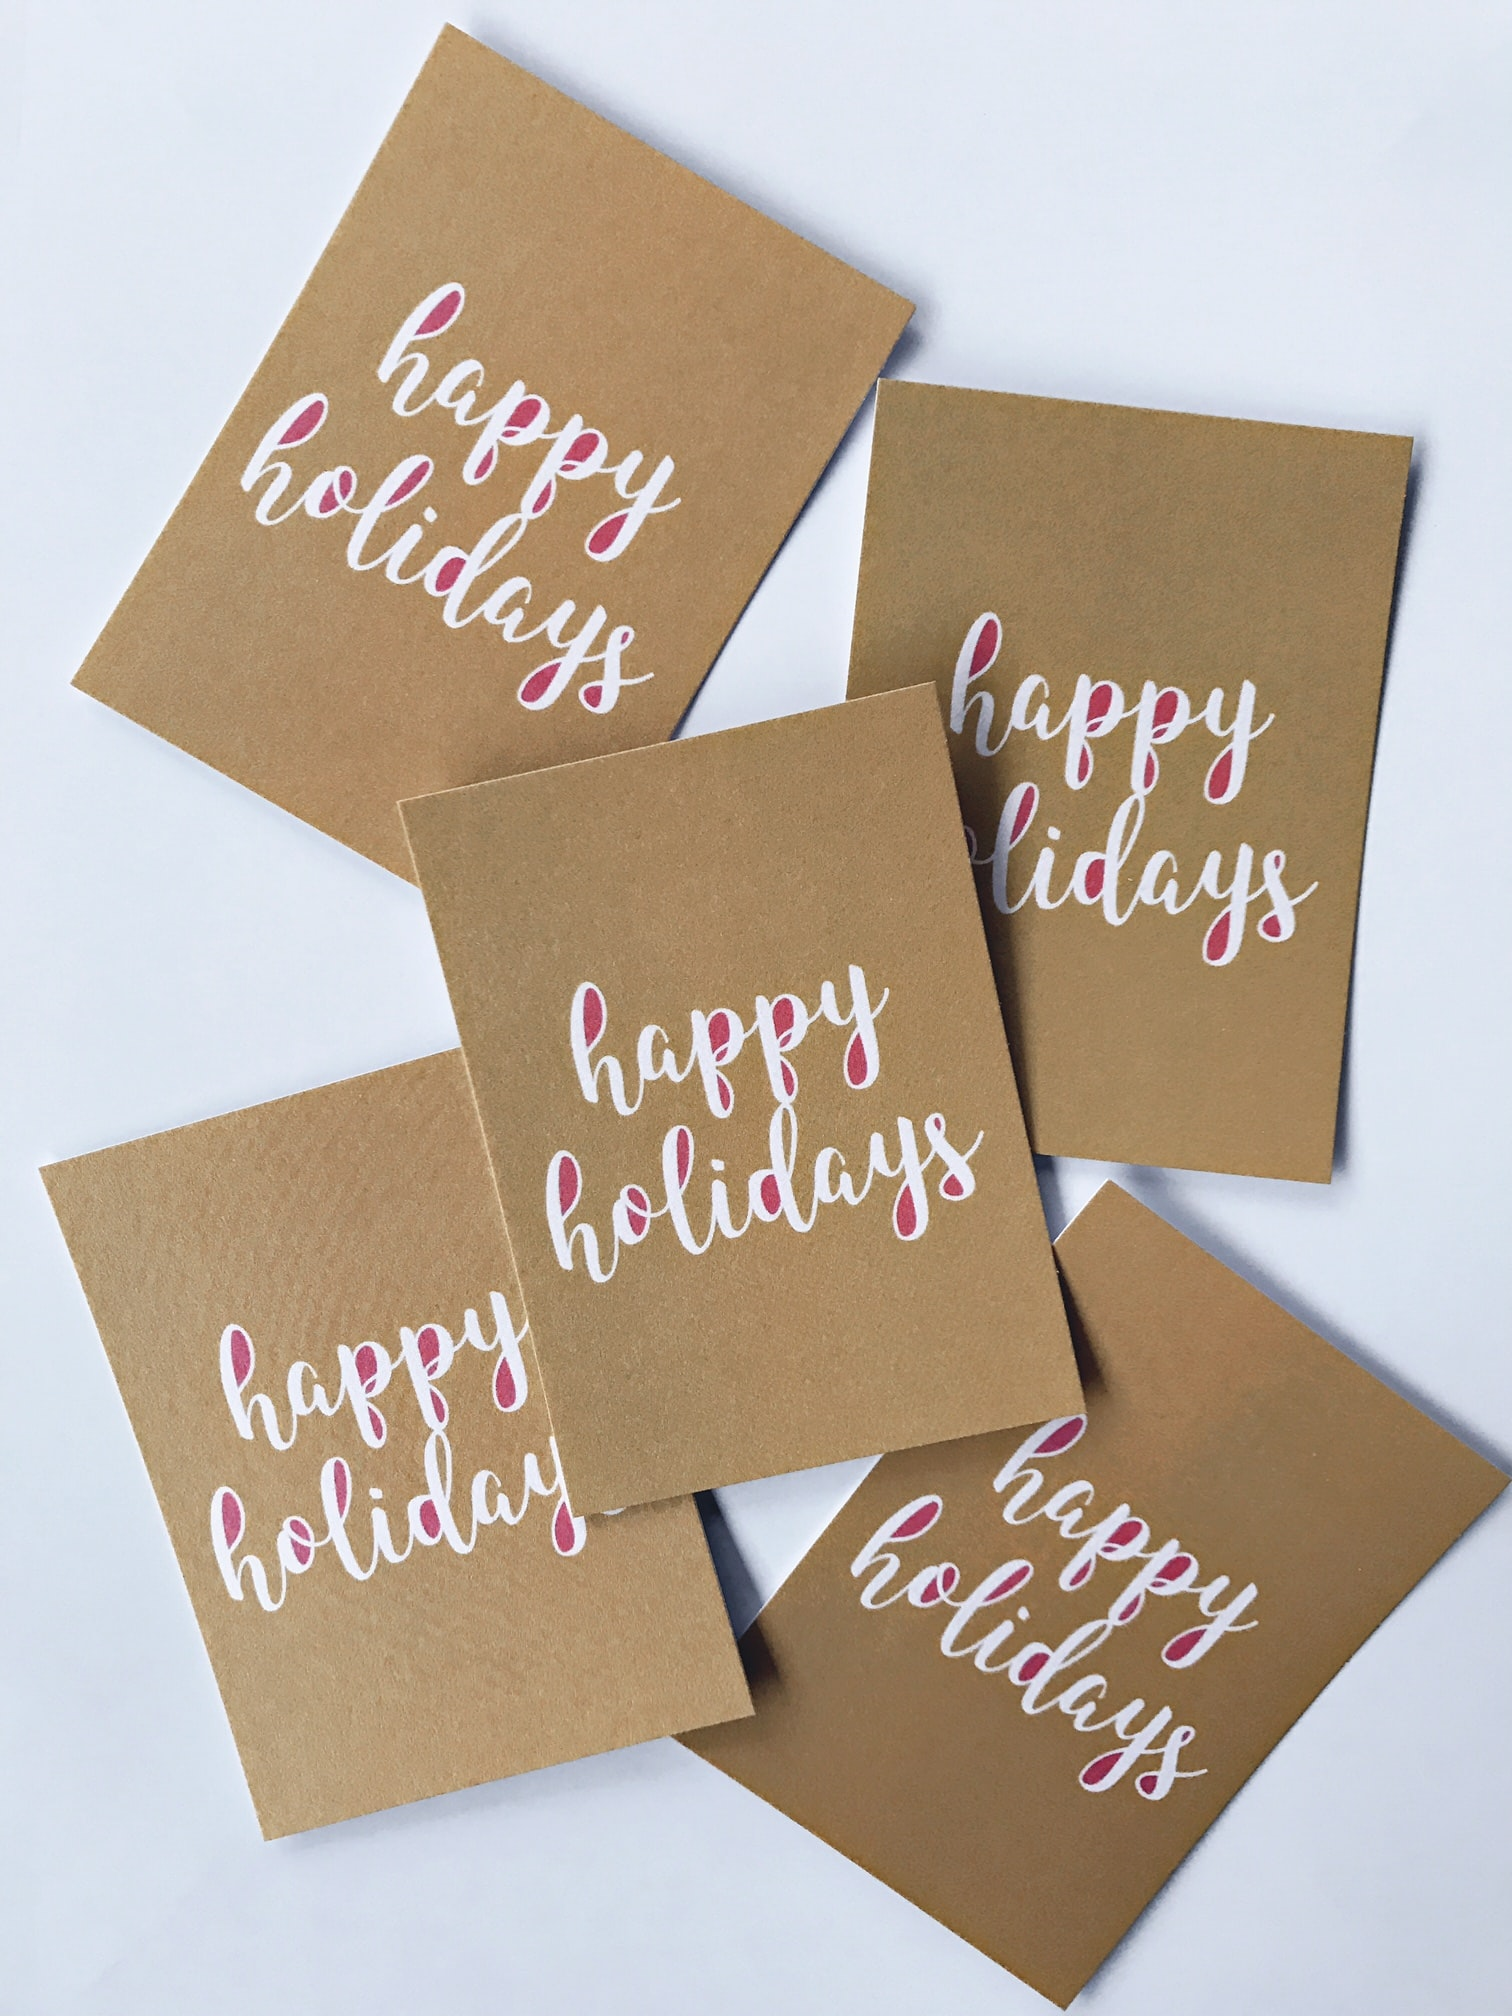 """Brown paper with white writing that says """"Happy Holidays."""""""